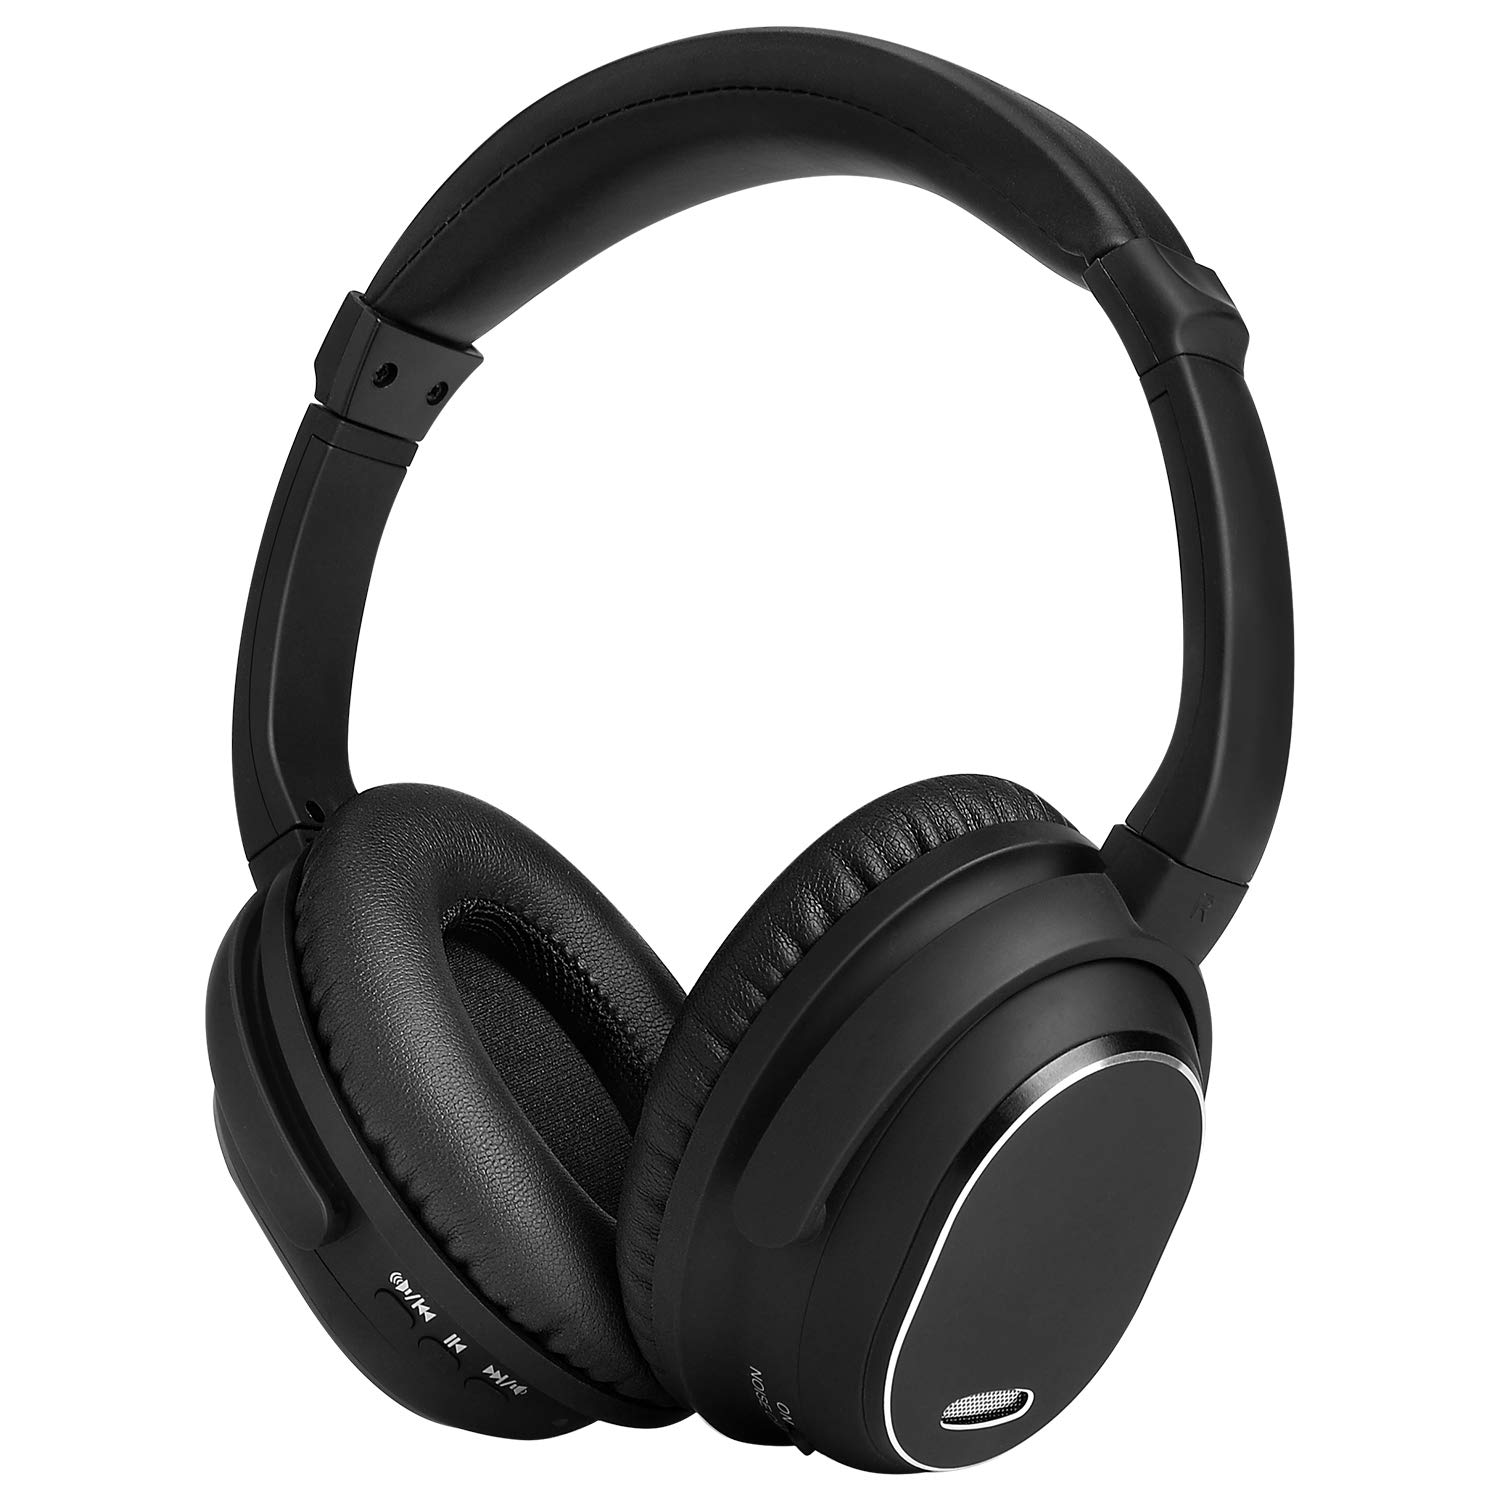 Active Noise Cancelling Headphones,MAYOGA Bluetooth Headphones with Mic Over-Ear Headphones Wireless/Wired Headphones Comfortable Stereo ANC Headset,HiFi Deep Bass for Work Travel TV PC Cellphones